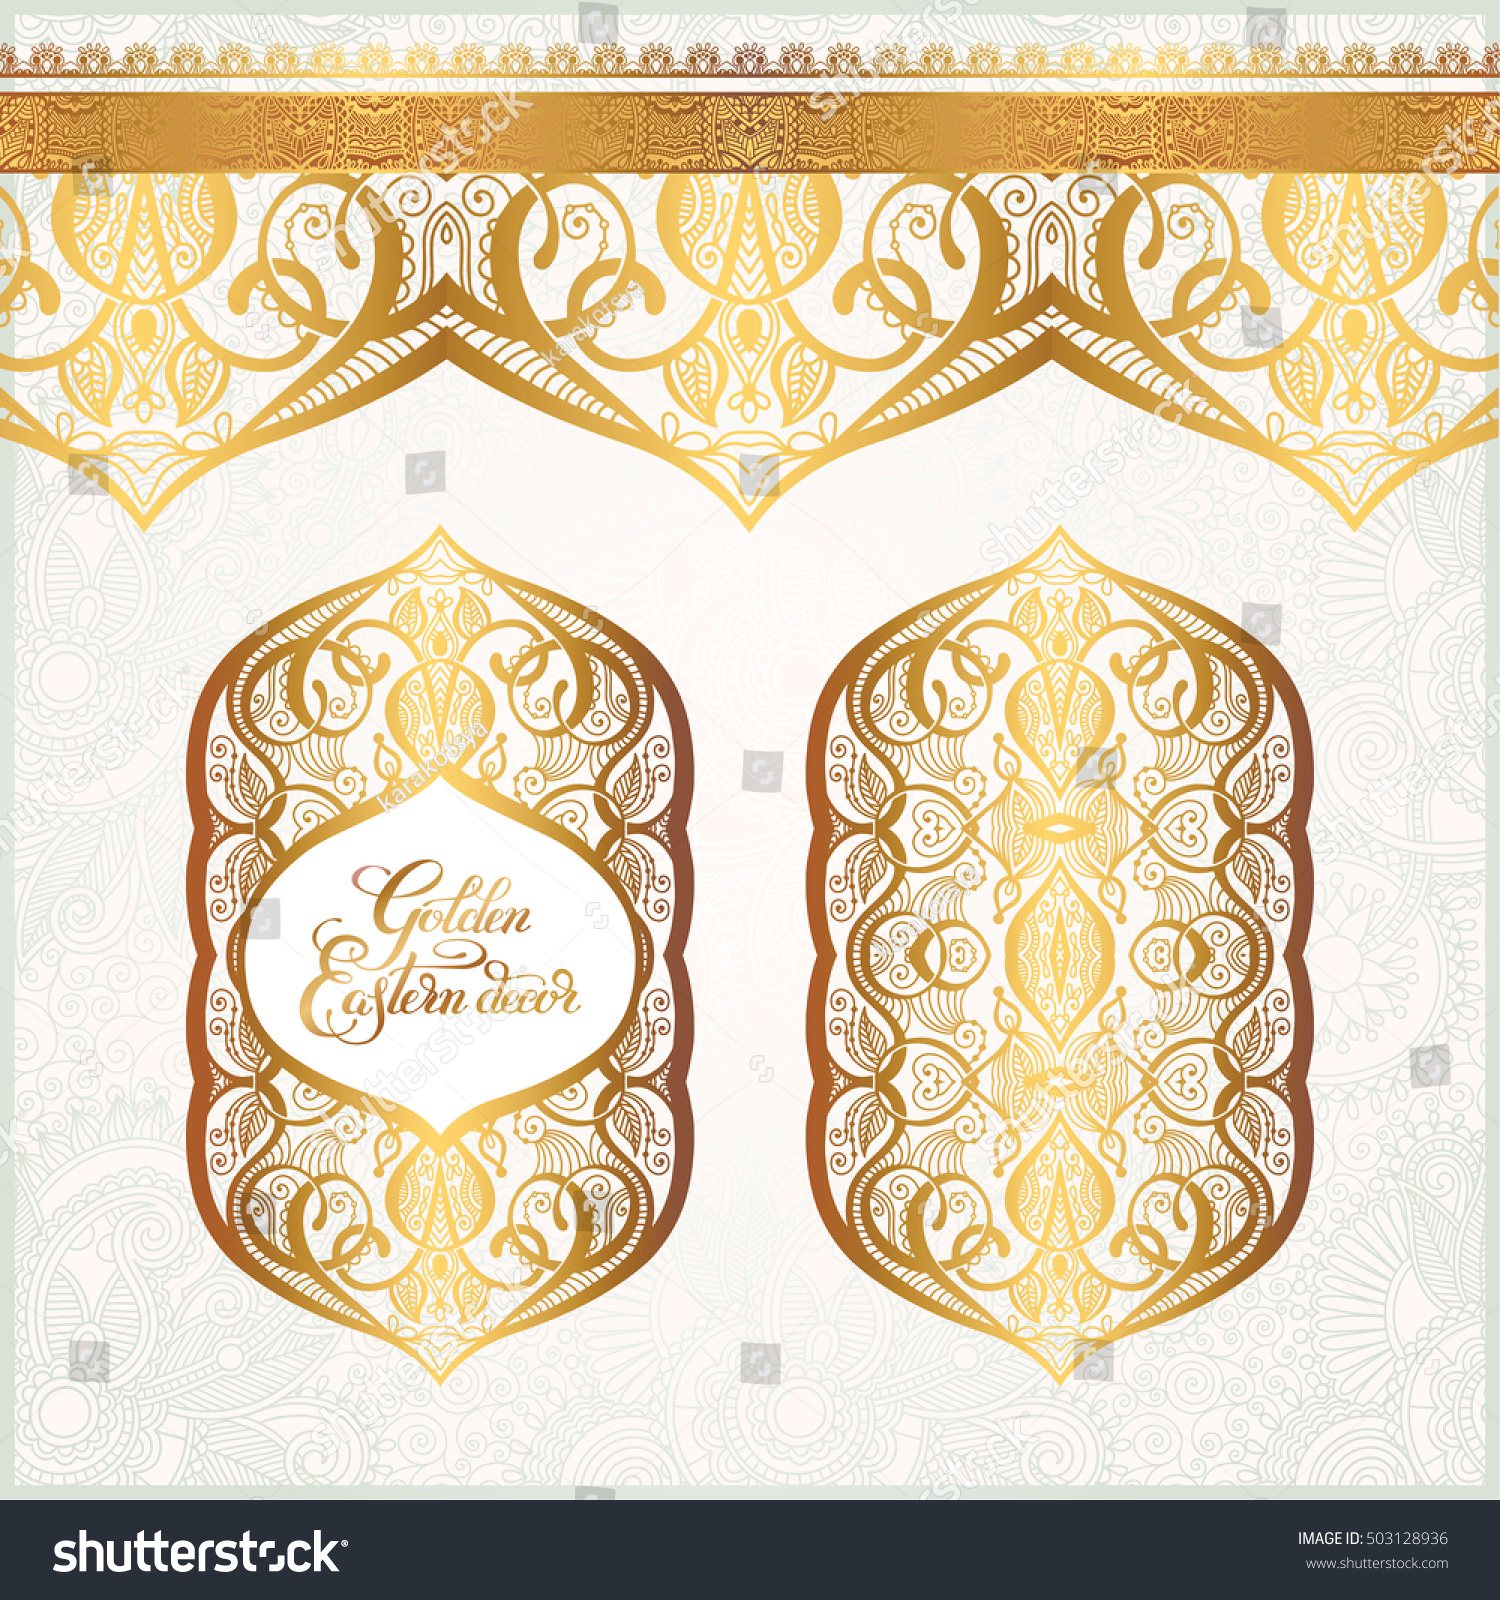 floral golden eastern decor with place for your text  paisley pattern for  wedding invitation. Floral Golden Eastern Decor Place Your Stock Vector 503128936